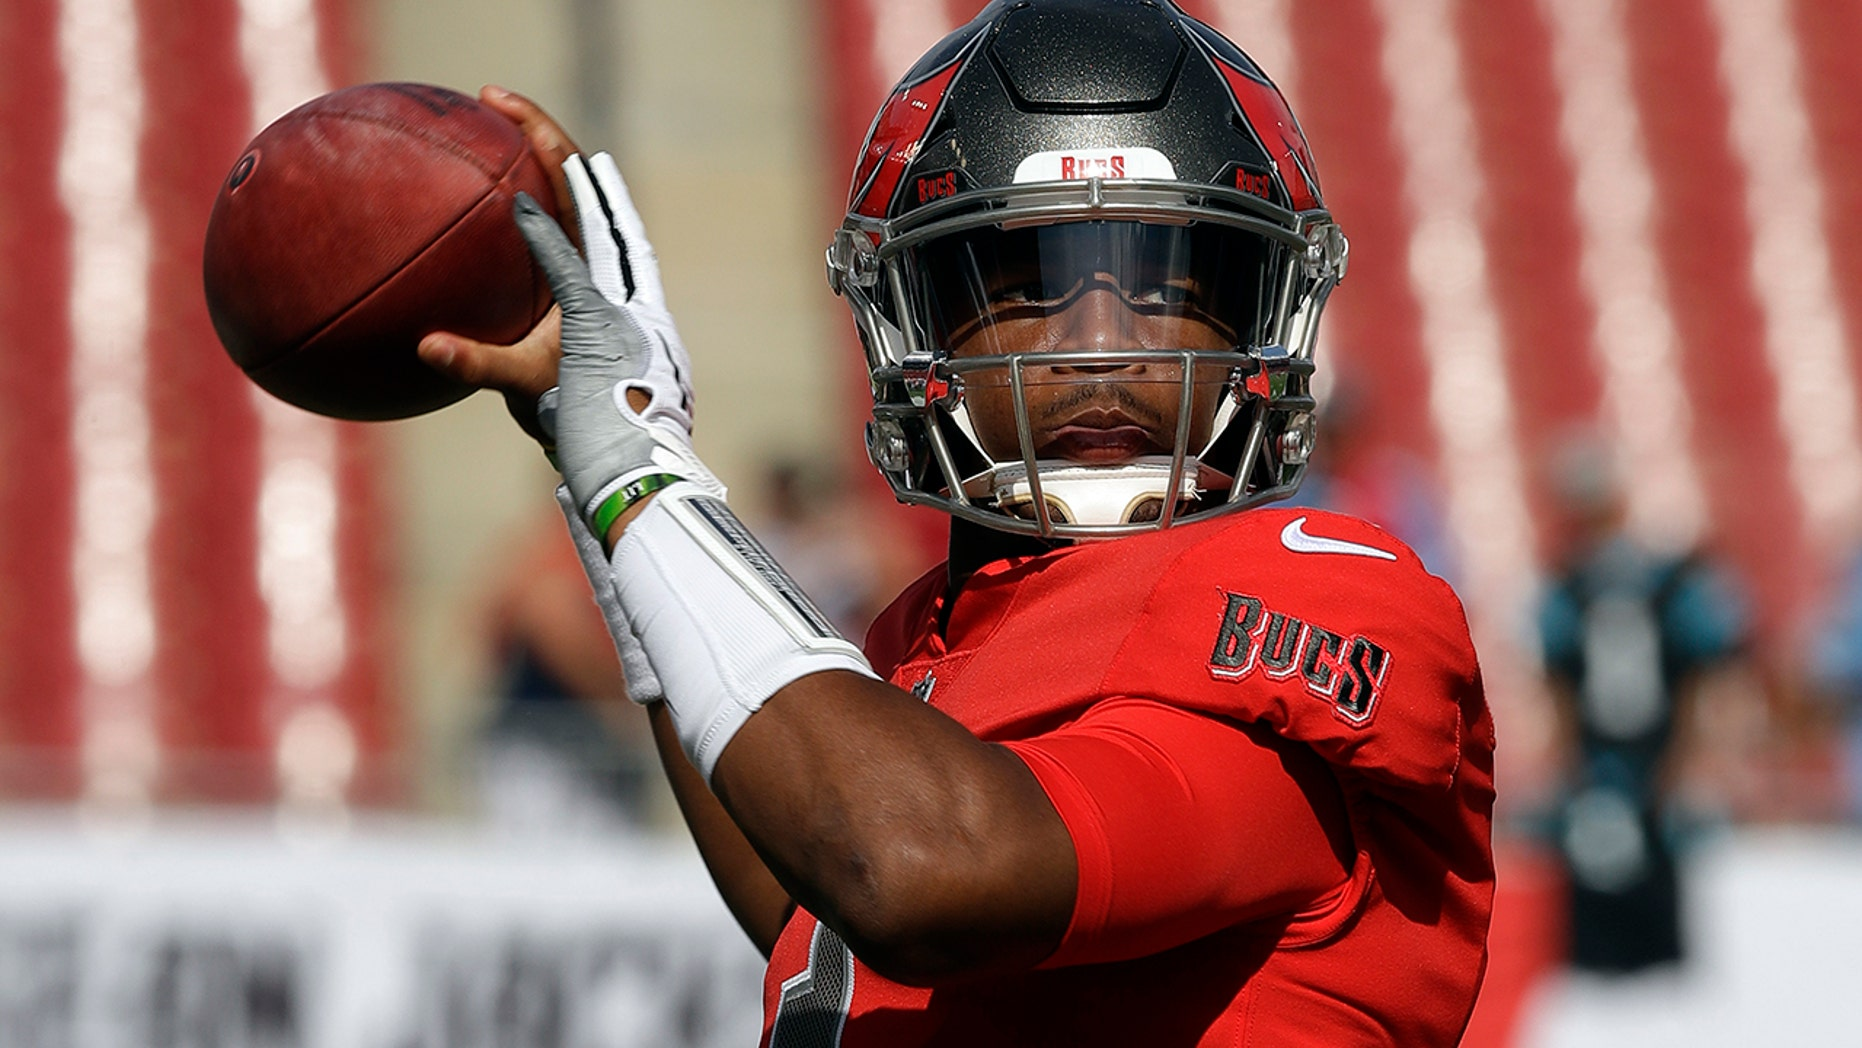 Tampa Bay Buccaneers quarterback Jameis Winston (3) got into a heated argument with a teammate Sunday.